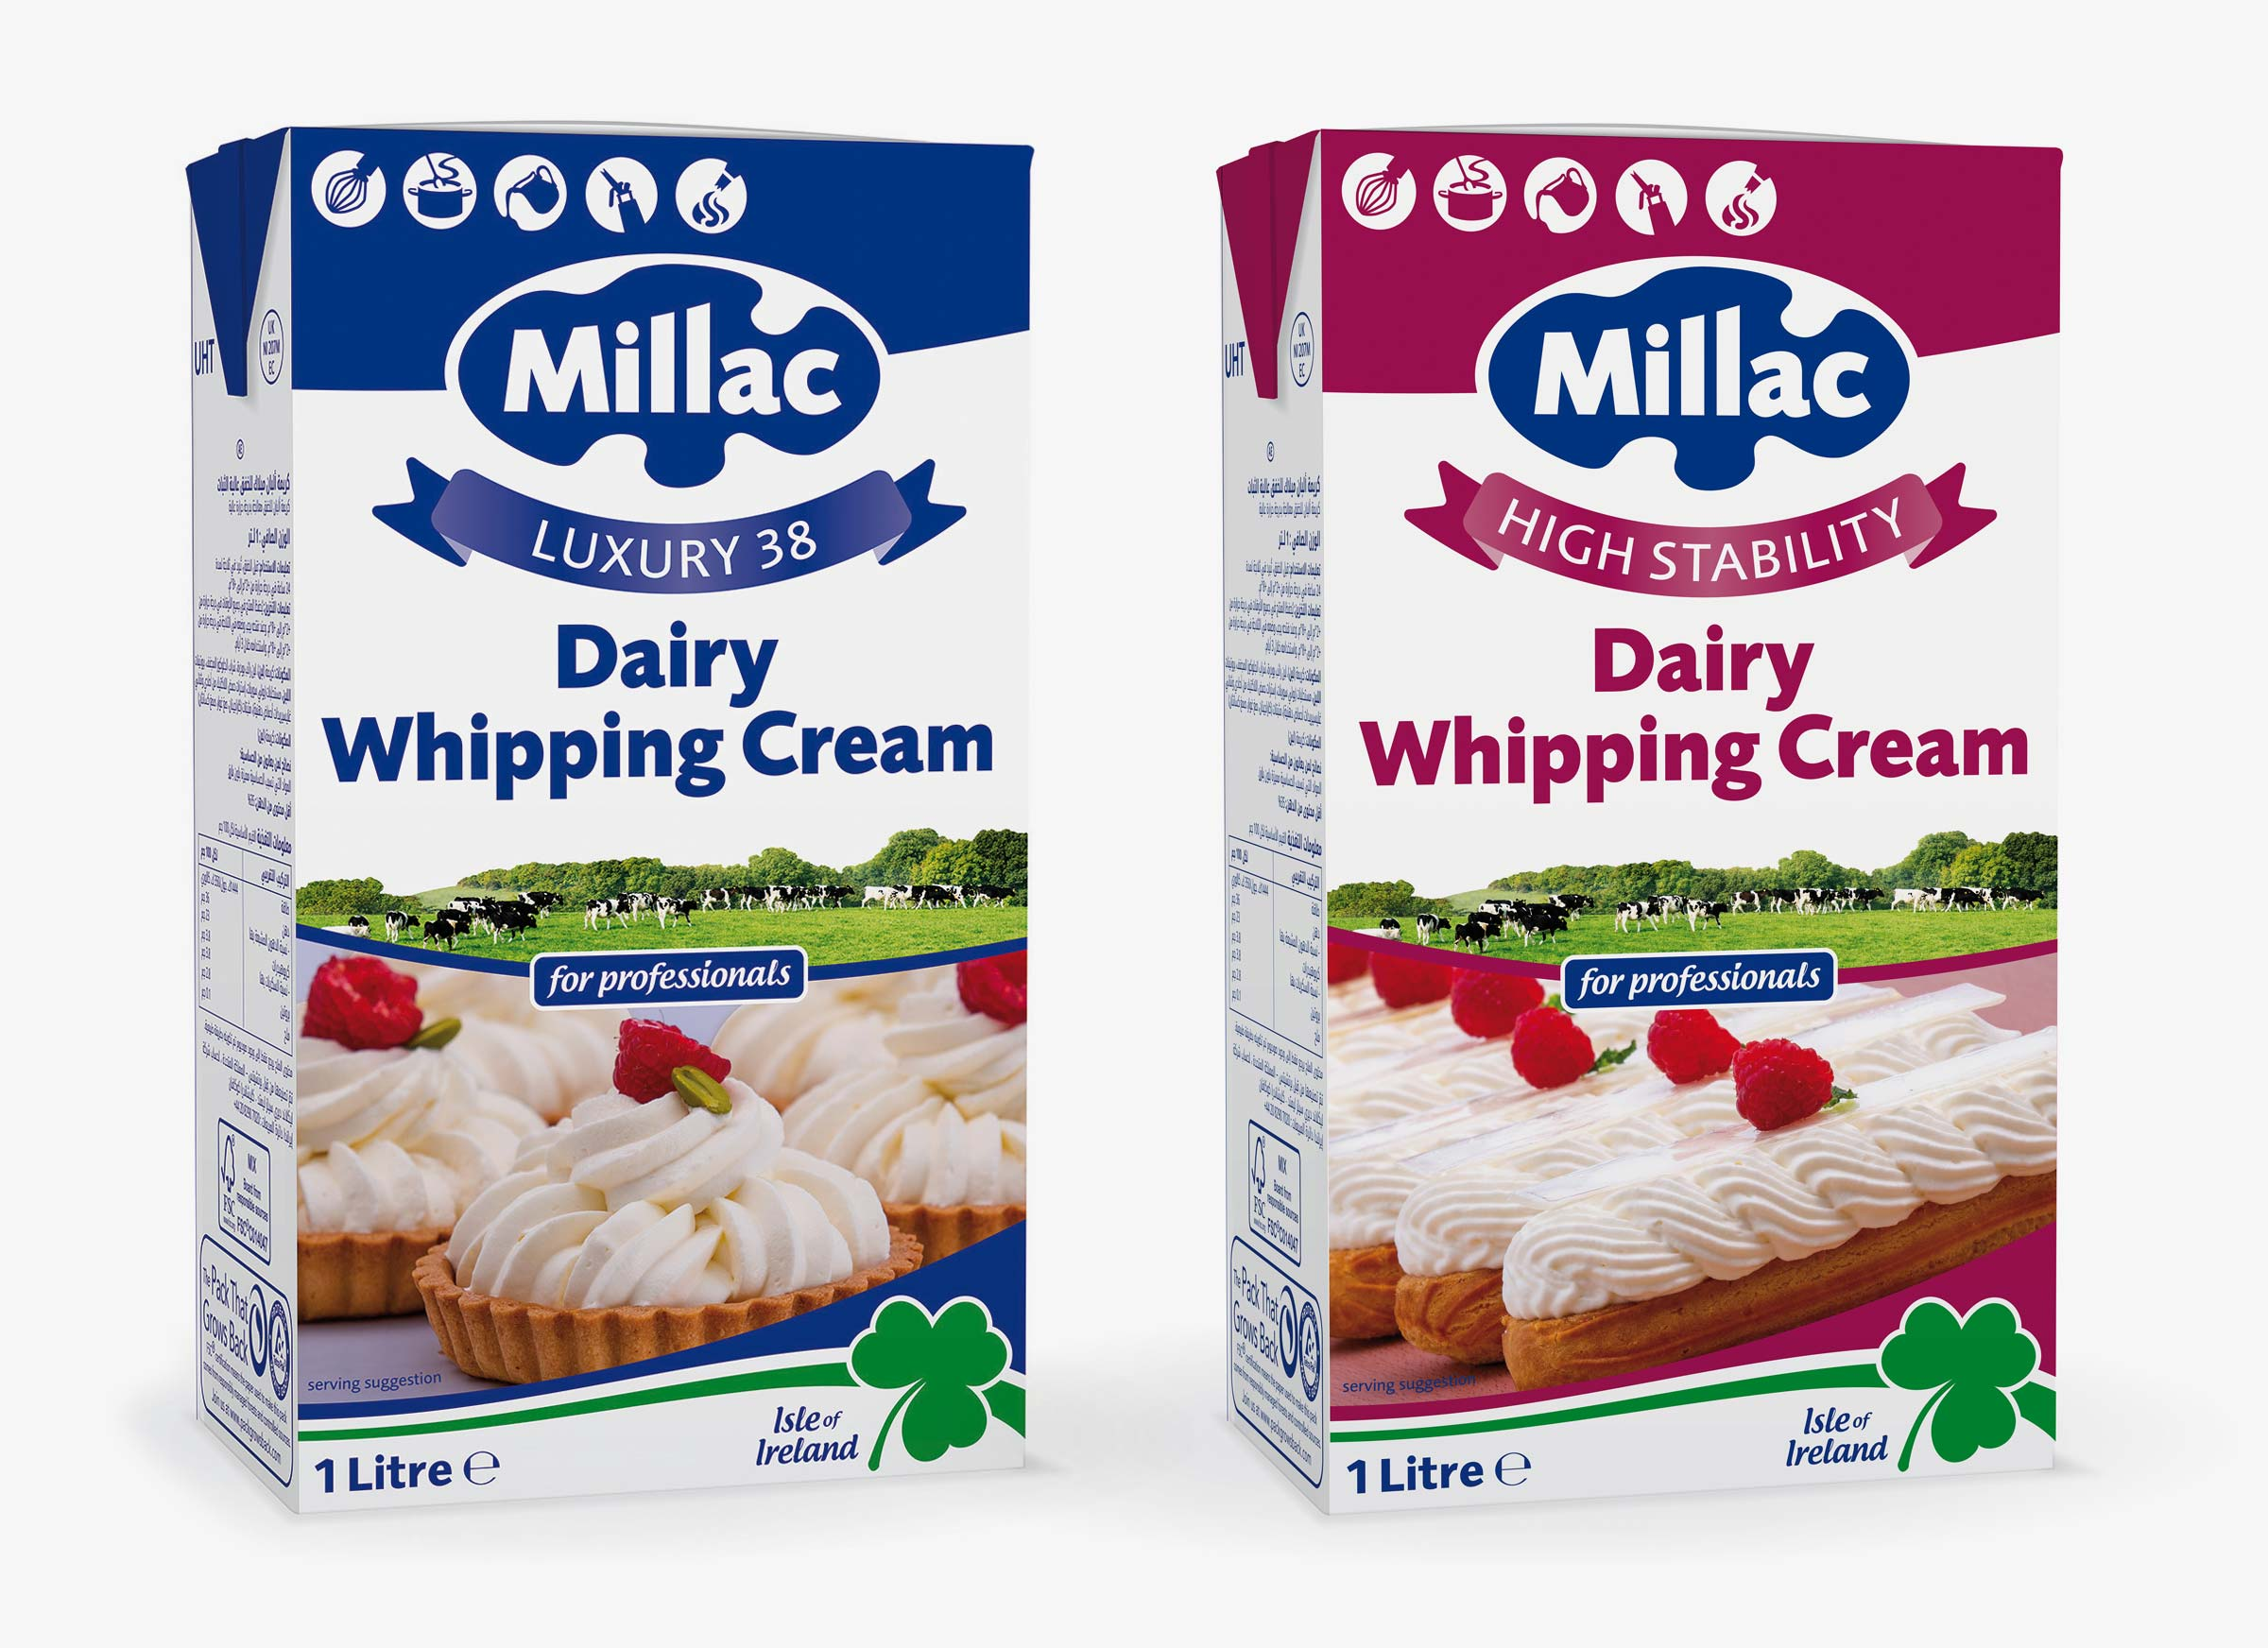 Millac Dairy Whipping Cream